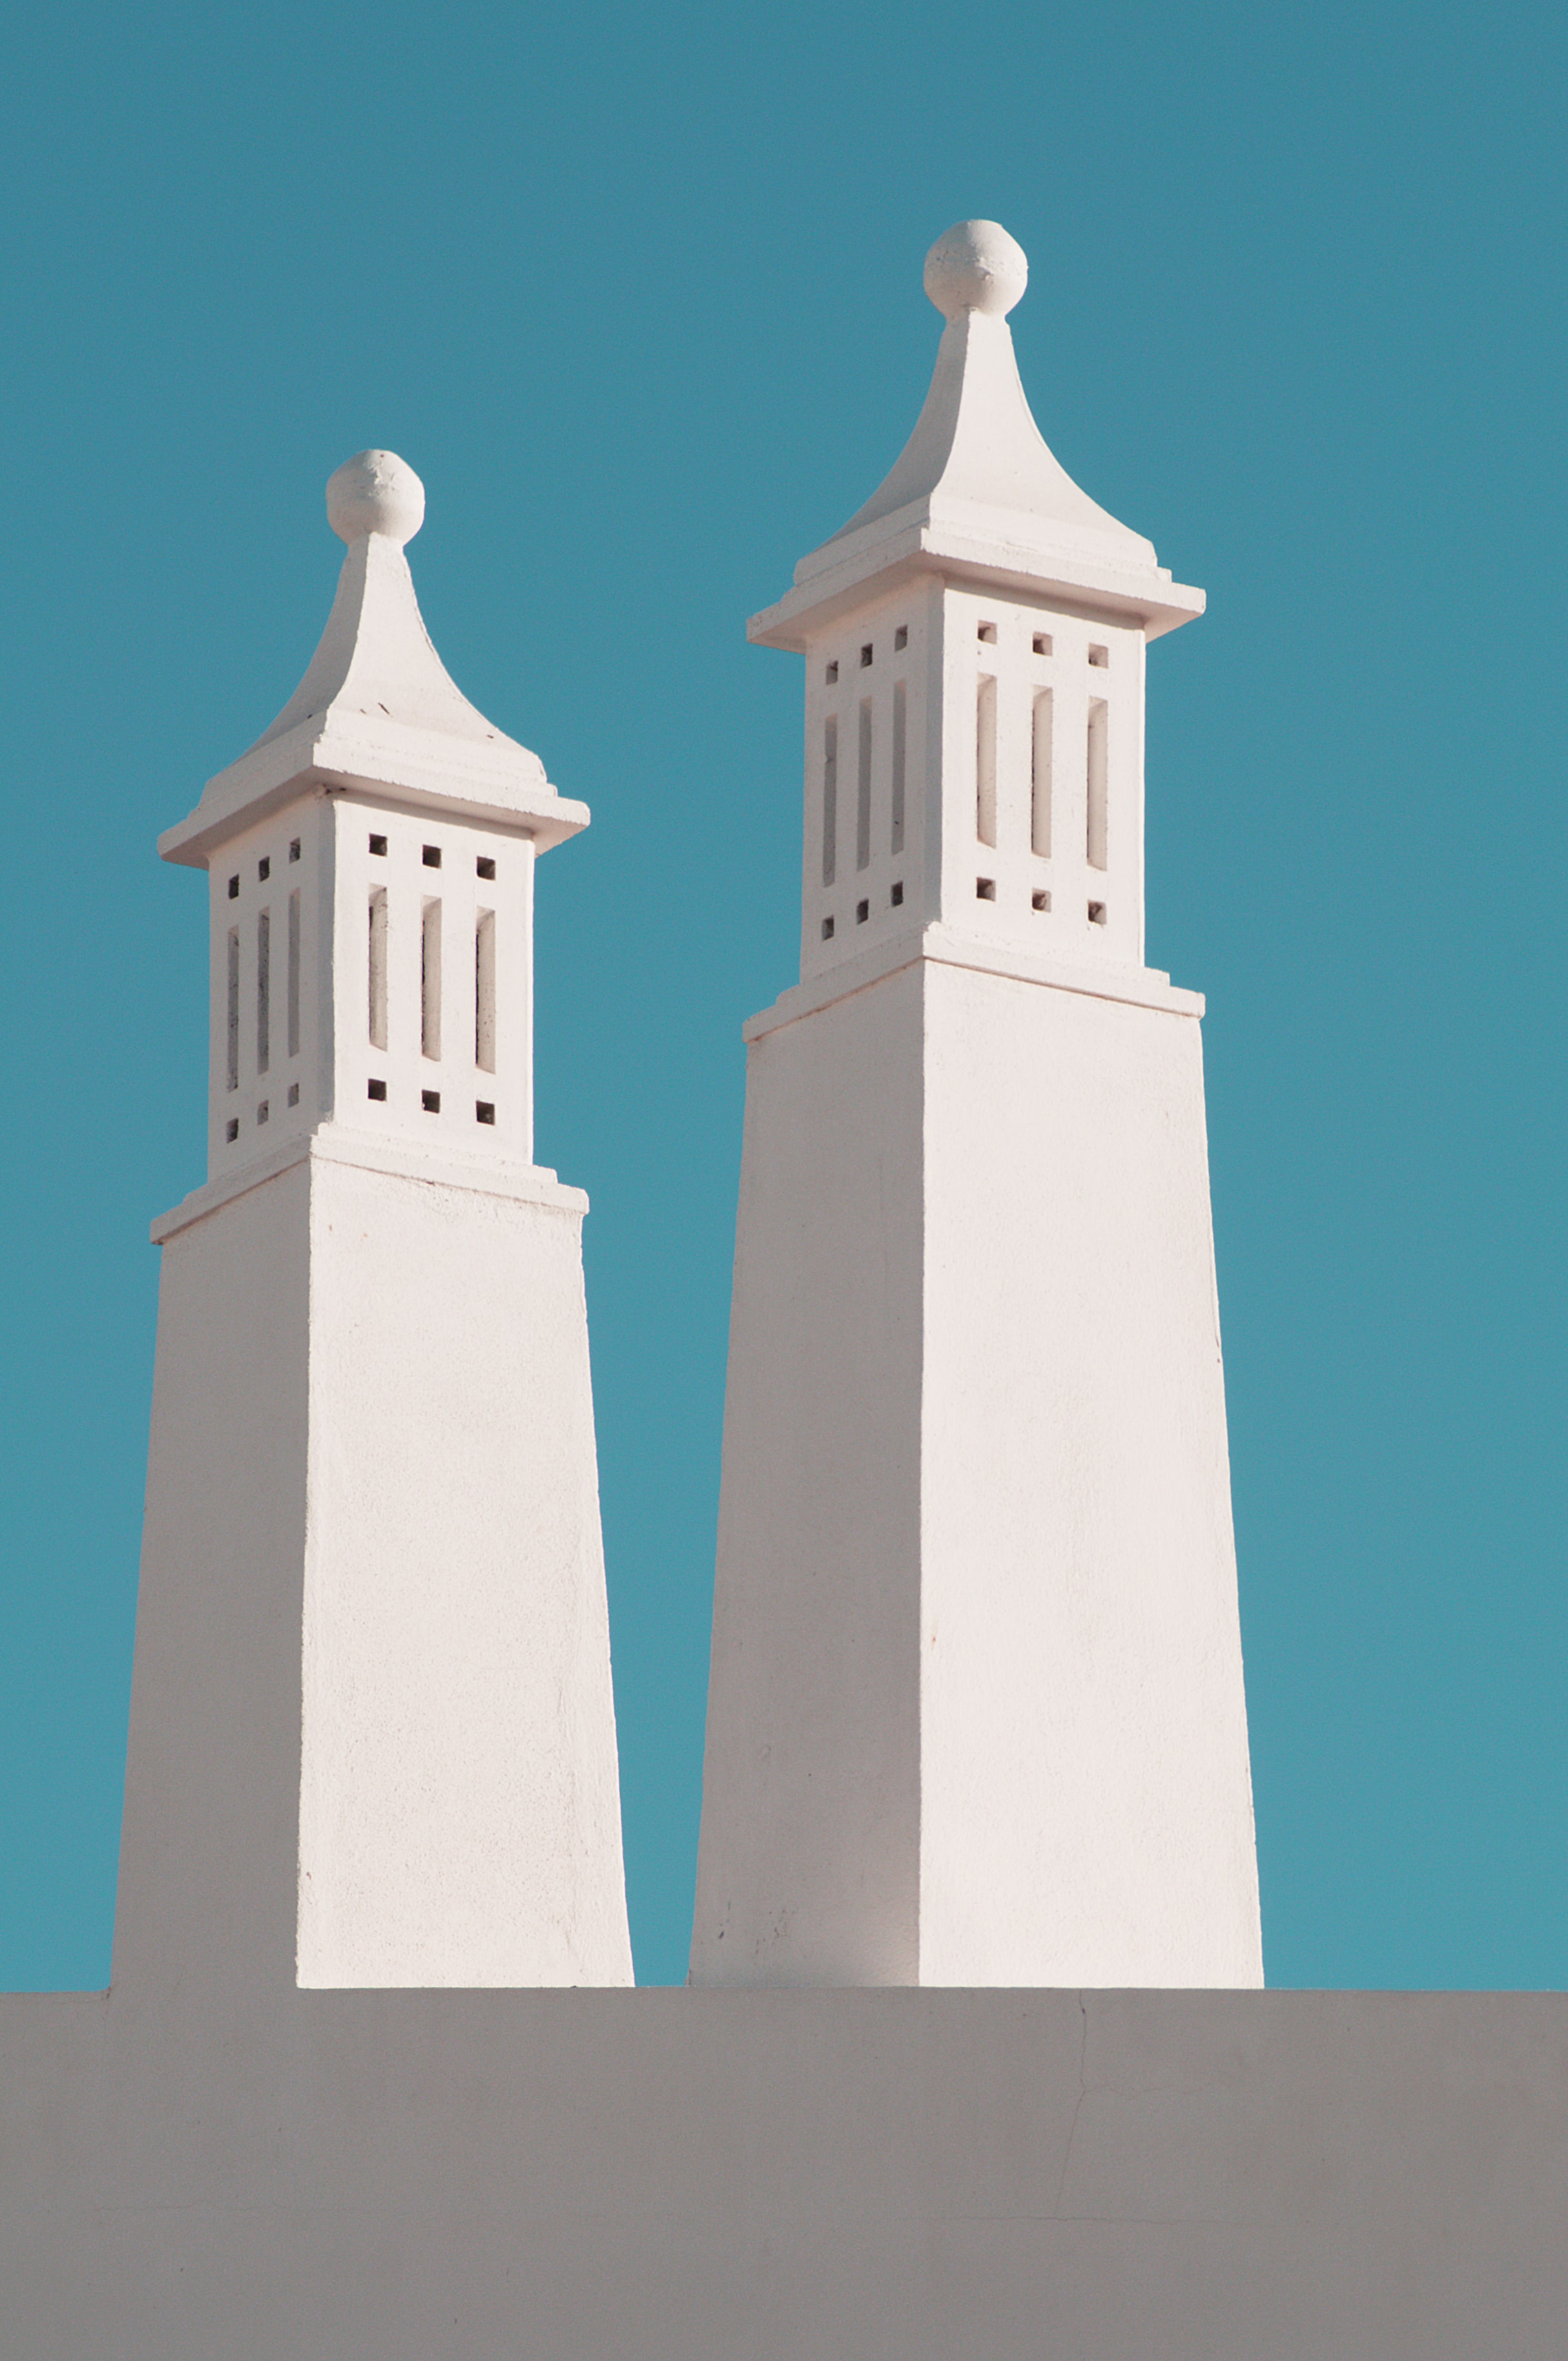 White concrete spires against a blue sky